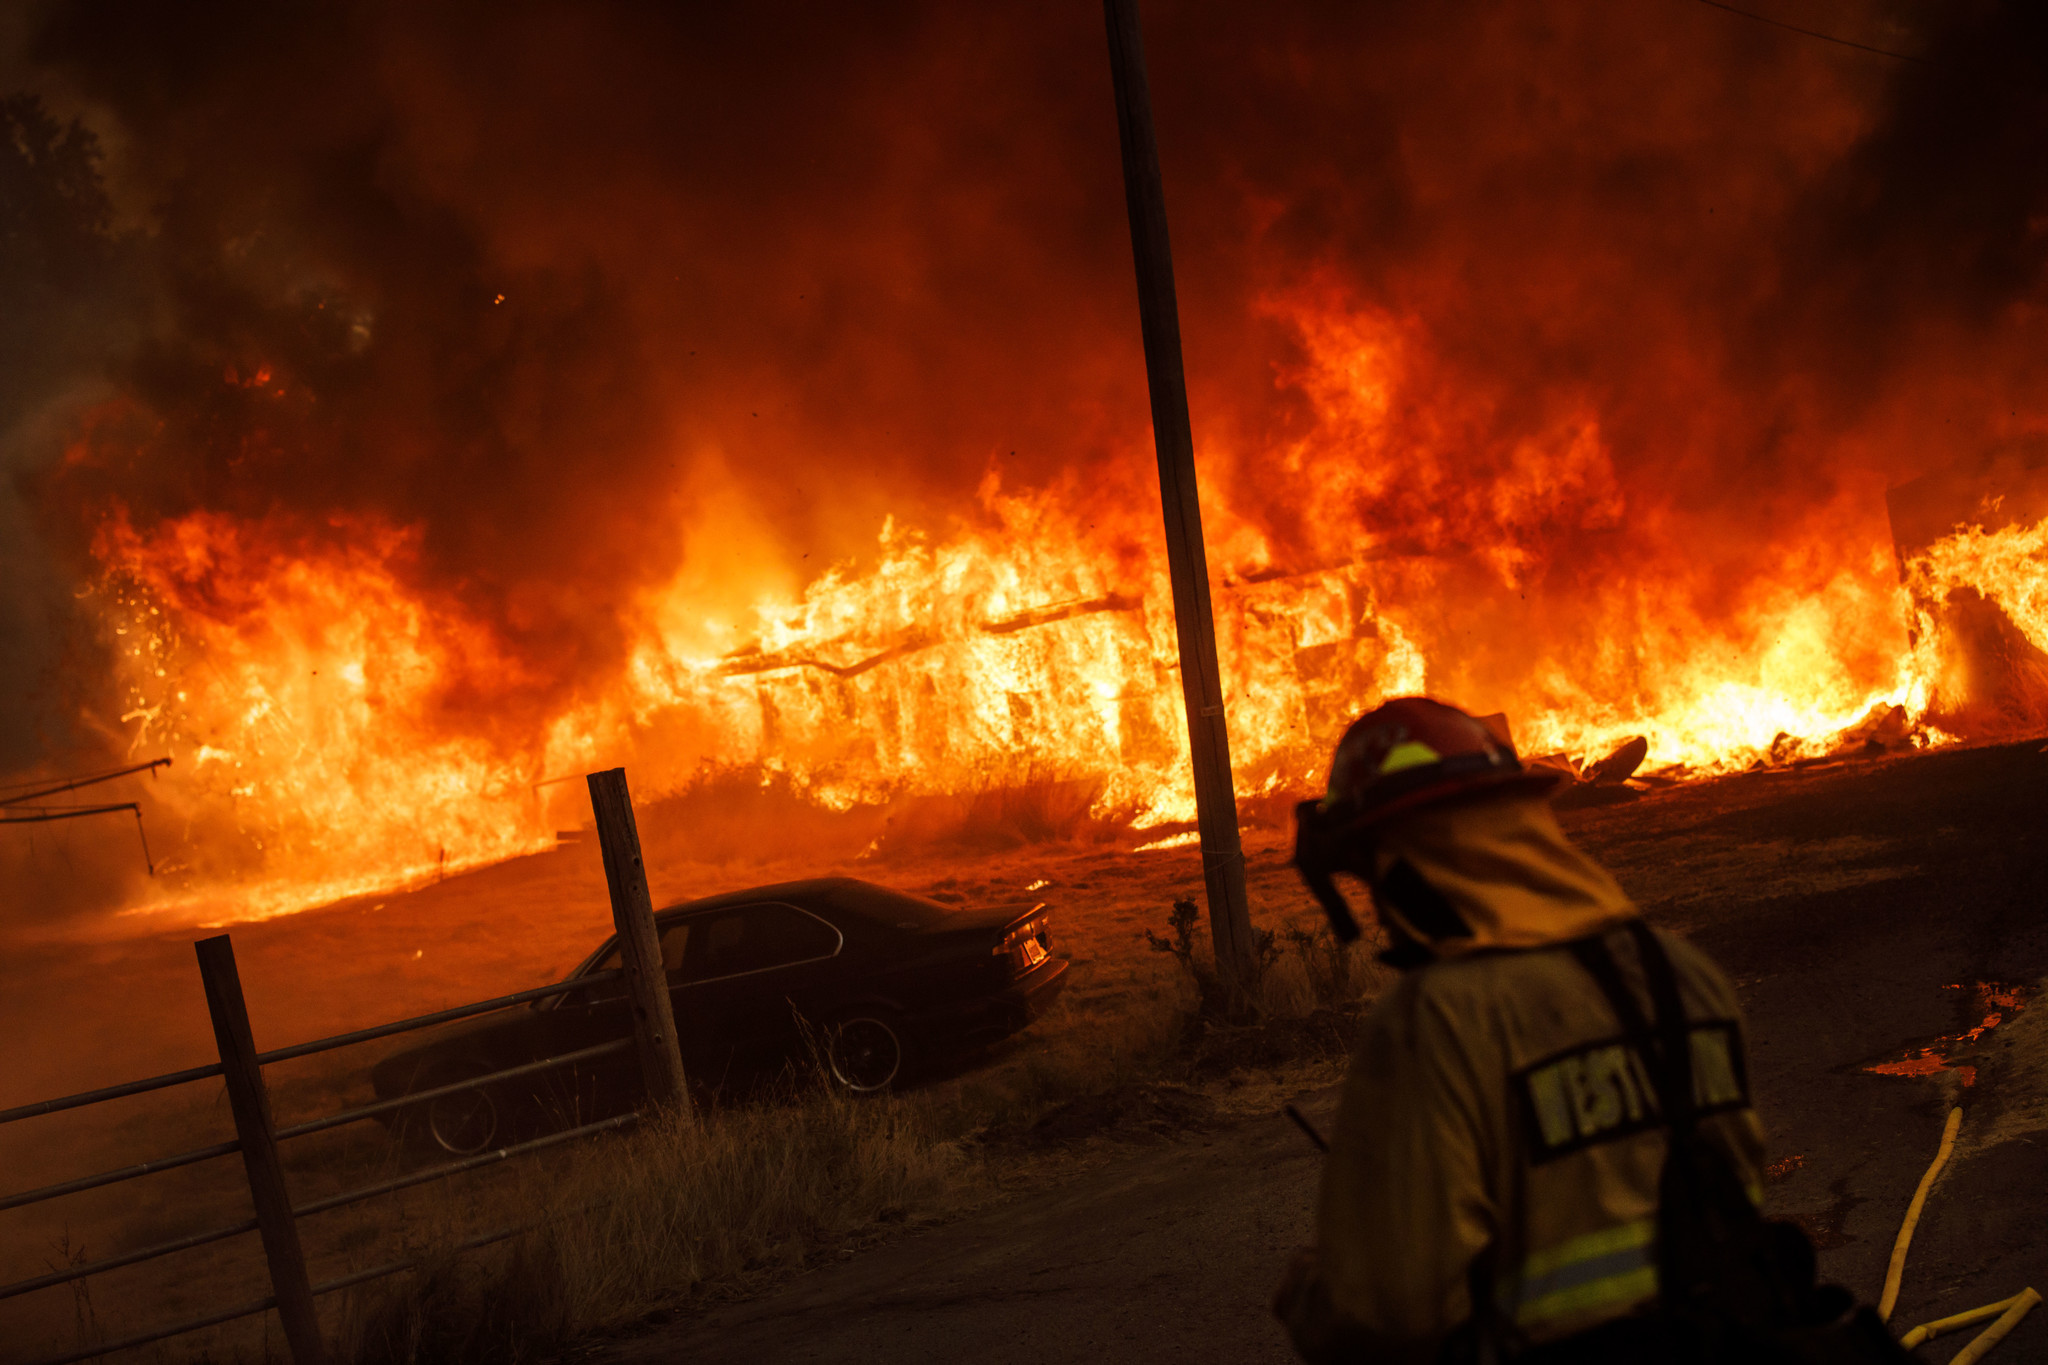 LAKEPORT, CALIF. — TUESDAY, JULY 31, 2018: A barn is engulfed in flames as the River Fire spreads w